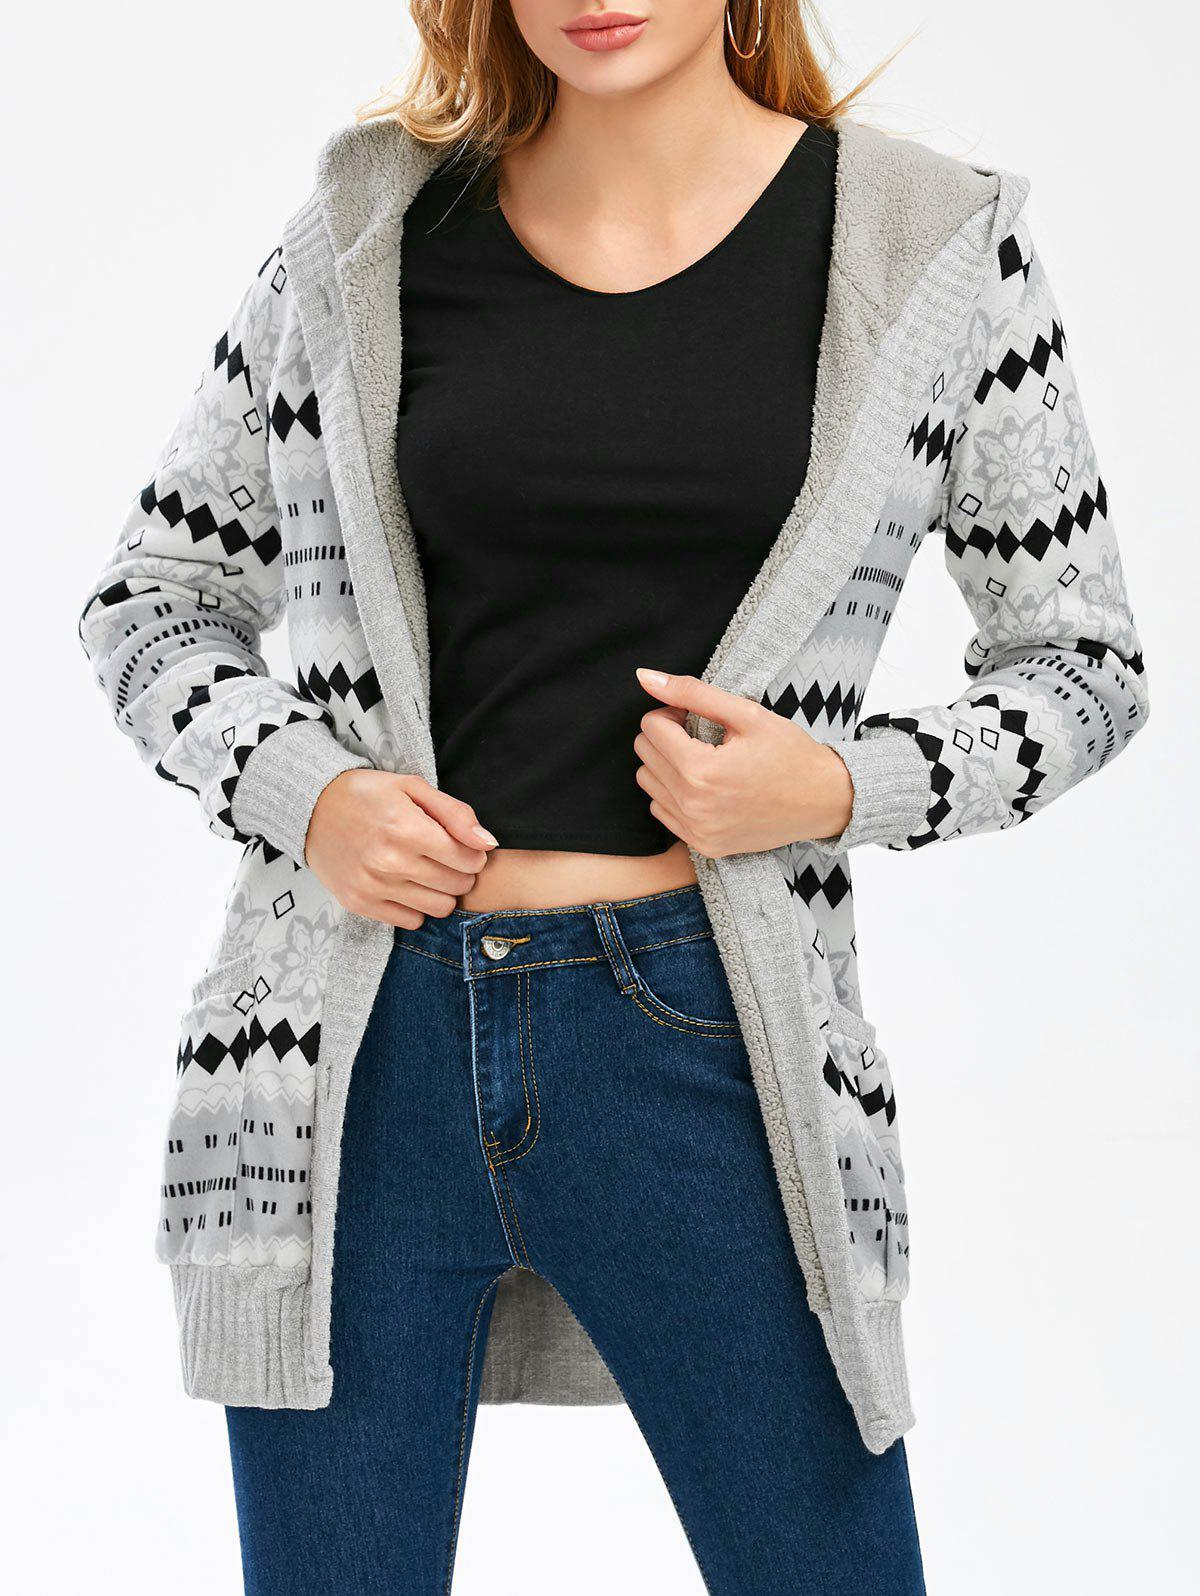 Hooded Button Up Geometric CardiganWOMEN<br><br>Size: L; Color: GRAY; Type: Cardigans; Material: Acrylic; Sleeve Length: Full; Collar: Hooded; Style: Casual; Pattern Type: Print; Season: Fall,Winter; Weight: 0.6000kg; Package Contents: 1 x Cardigan;